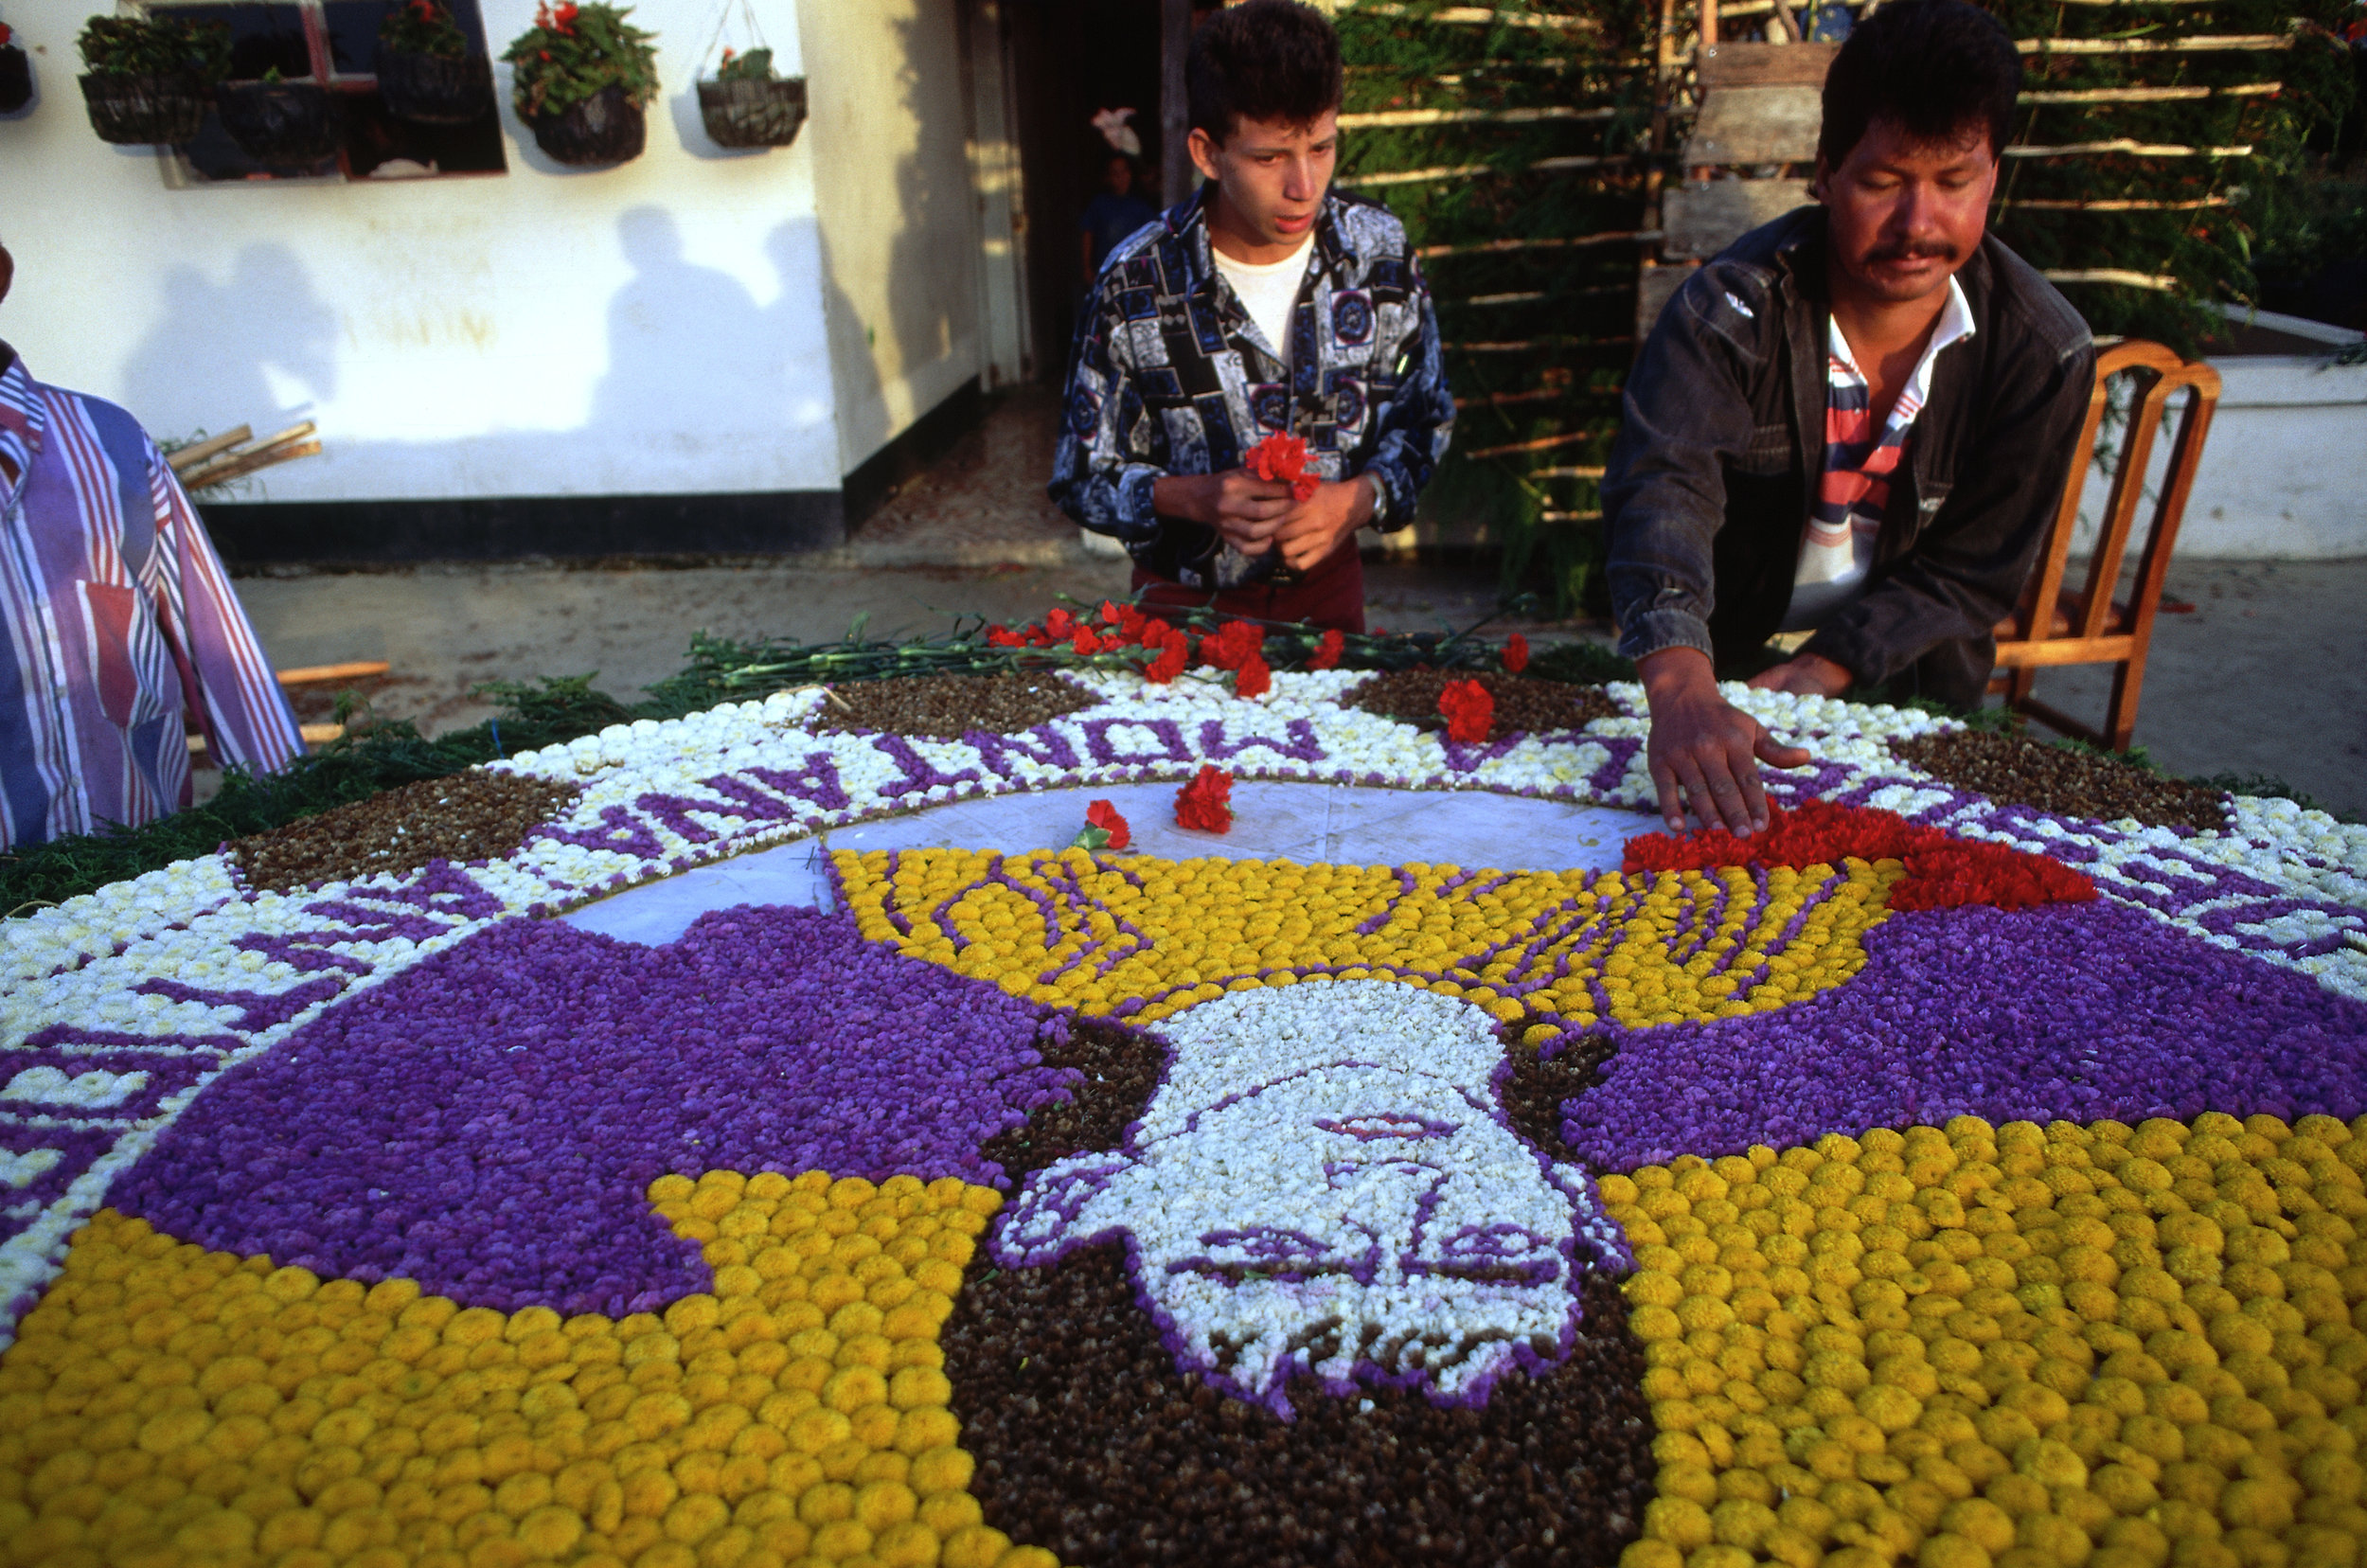 Two men construct a flower memorial to Andrés Escobar. Photo by Jeremy Horner/Corbis.